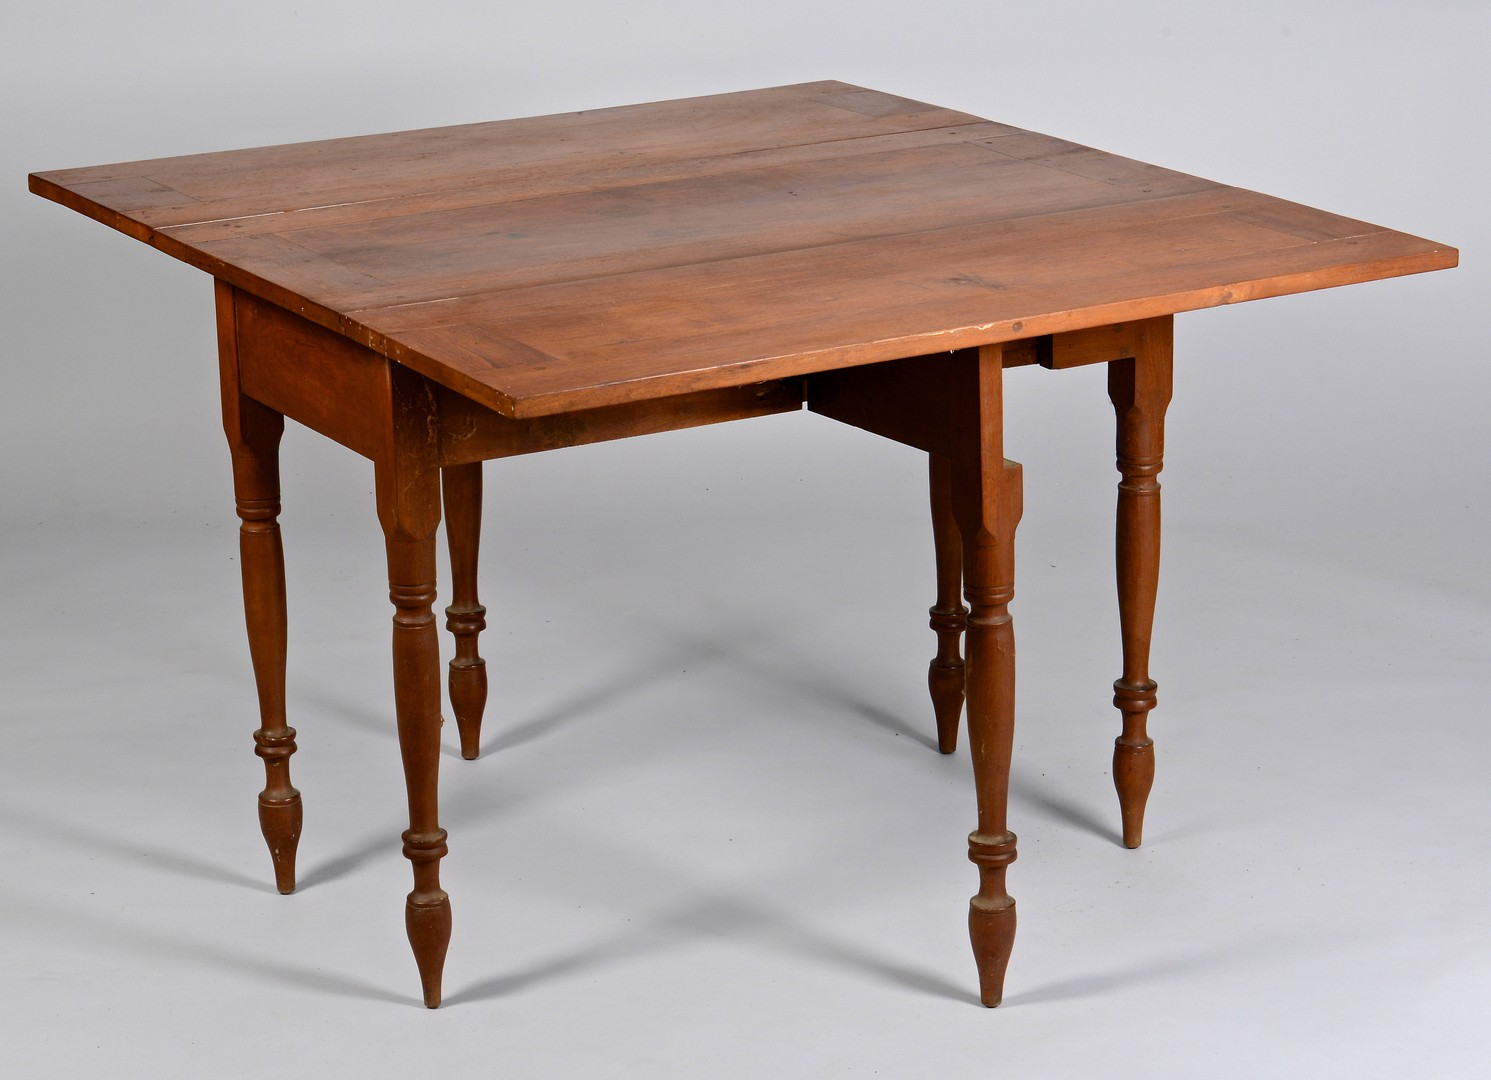 Lot 291: East TN Walnut Fall Leaf Table, Paneled Leaves